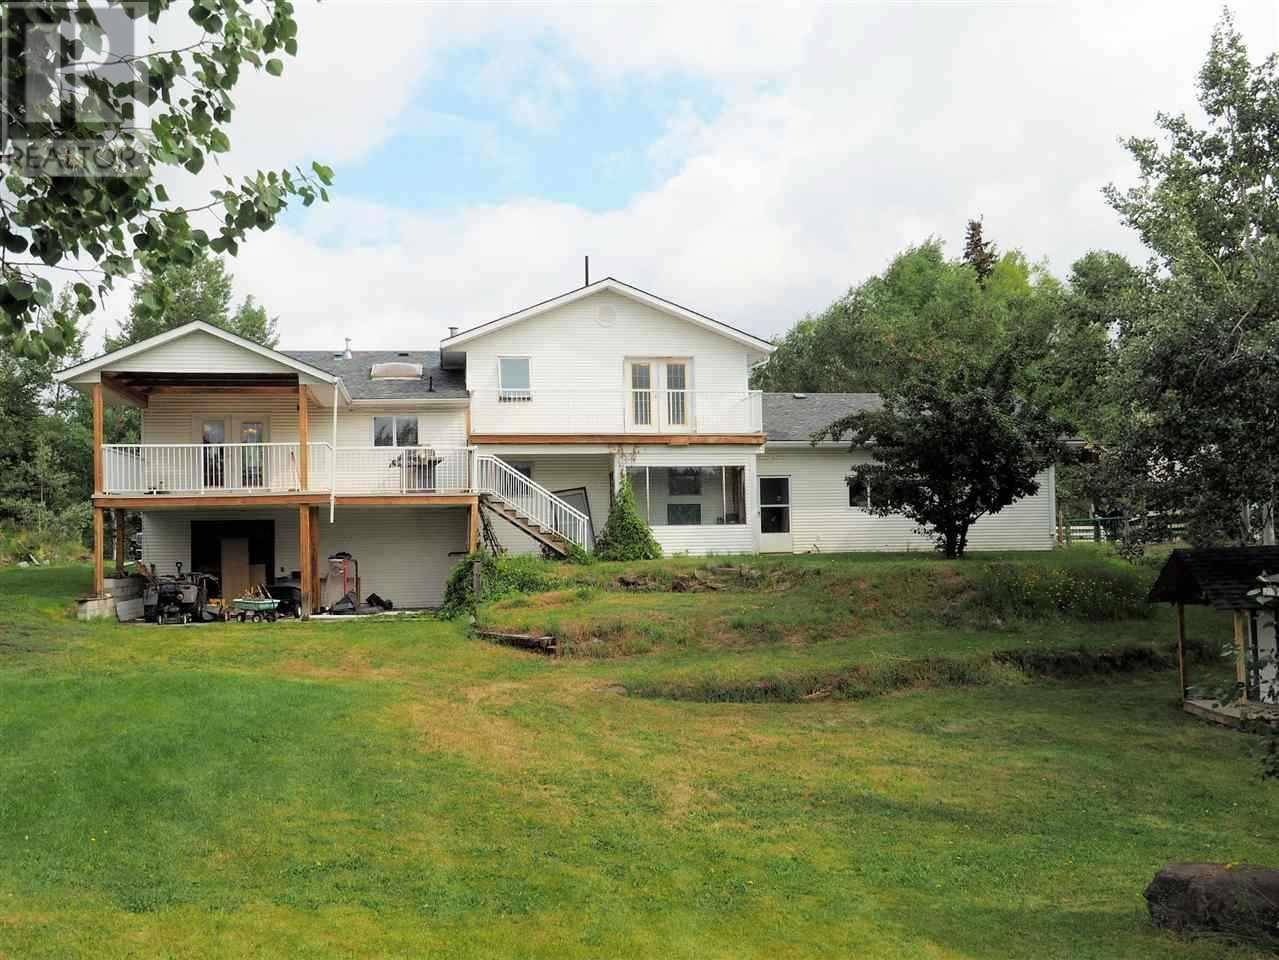 House for sale at 5582 Lakeside Ct 103 Mile House British Columbia - MLS: R2424437